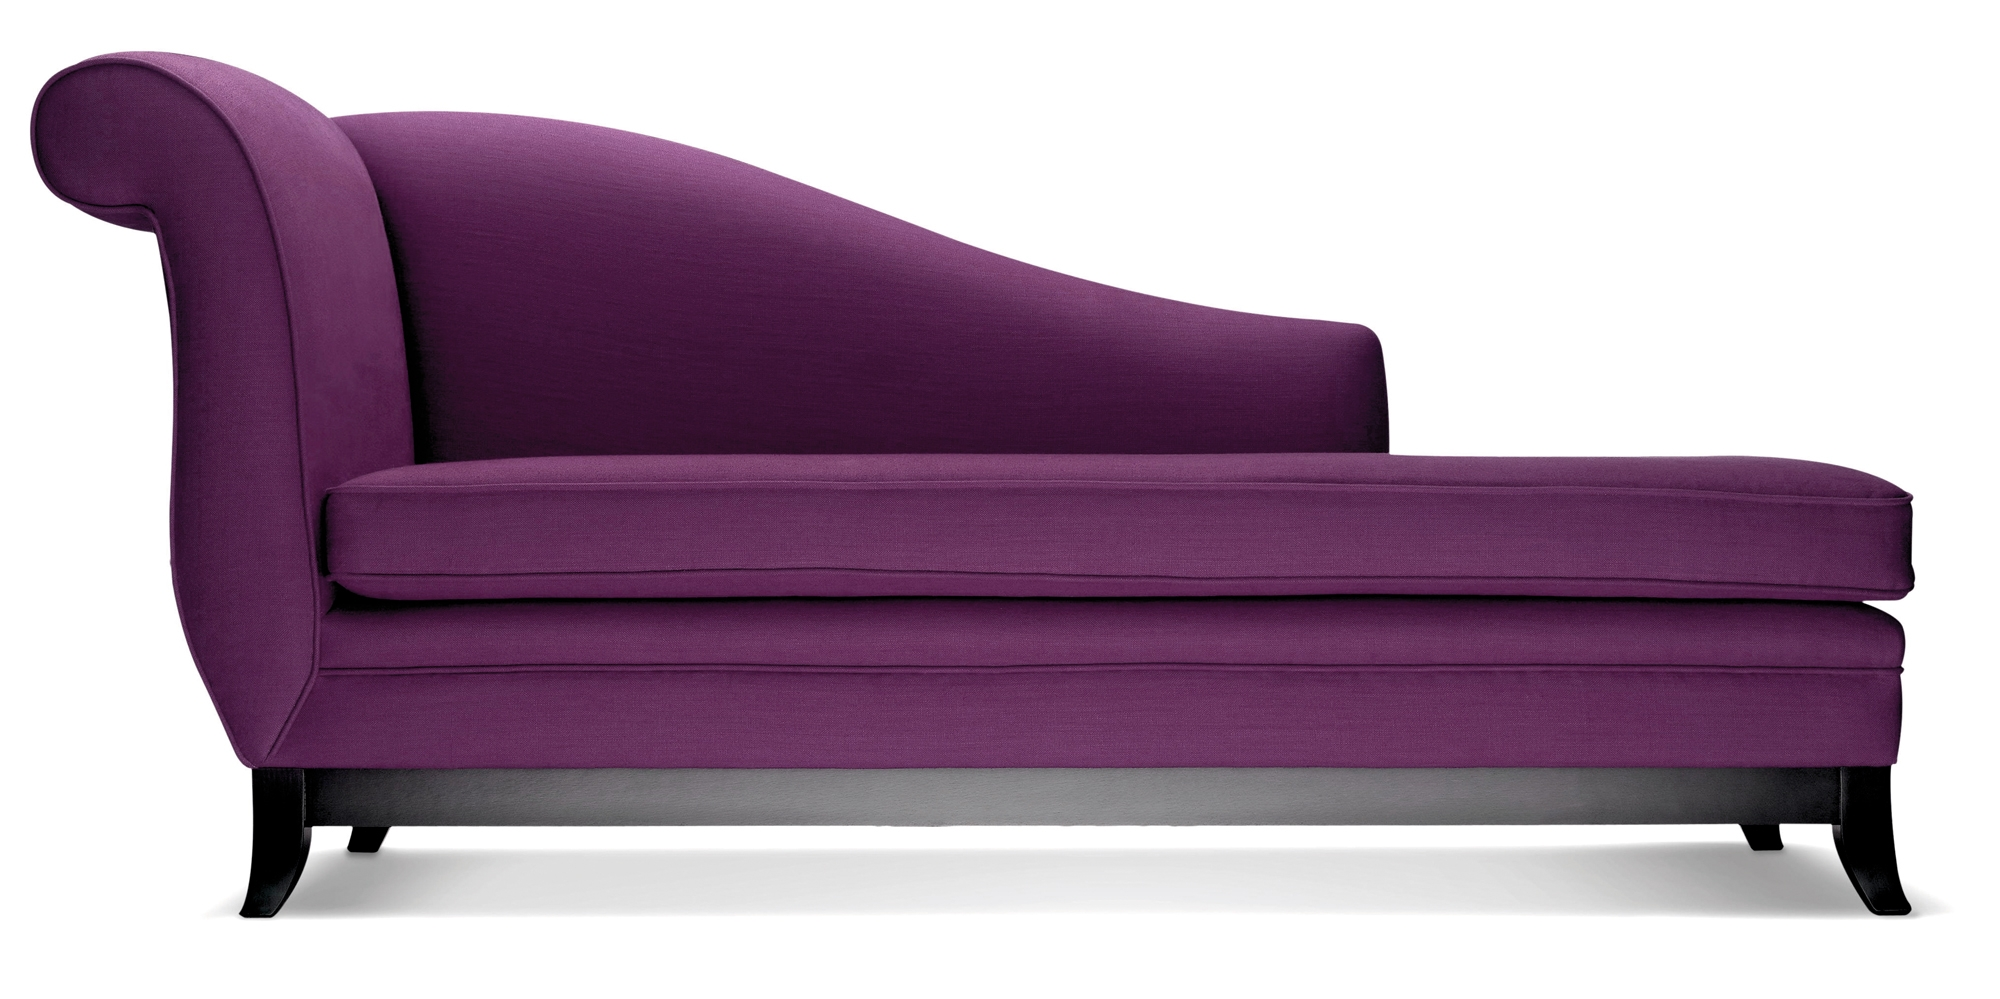 Sofa Beach Style Purple Velvet Tufted Hudson Home Decor Backless Pertaining To Backless Chaise Sofa (#12 of 12)